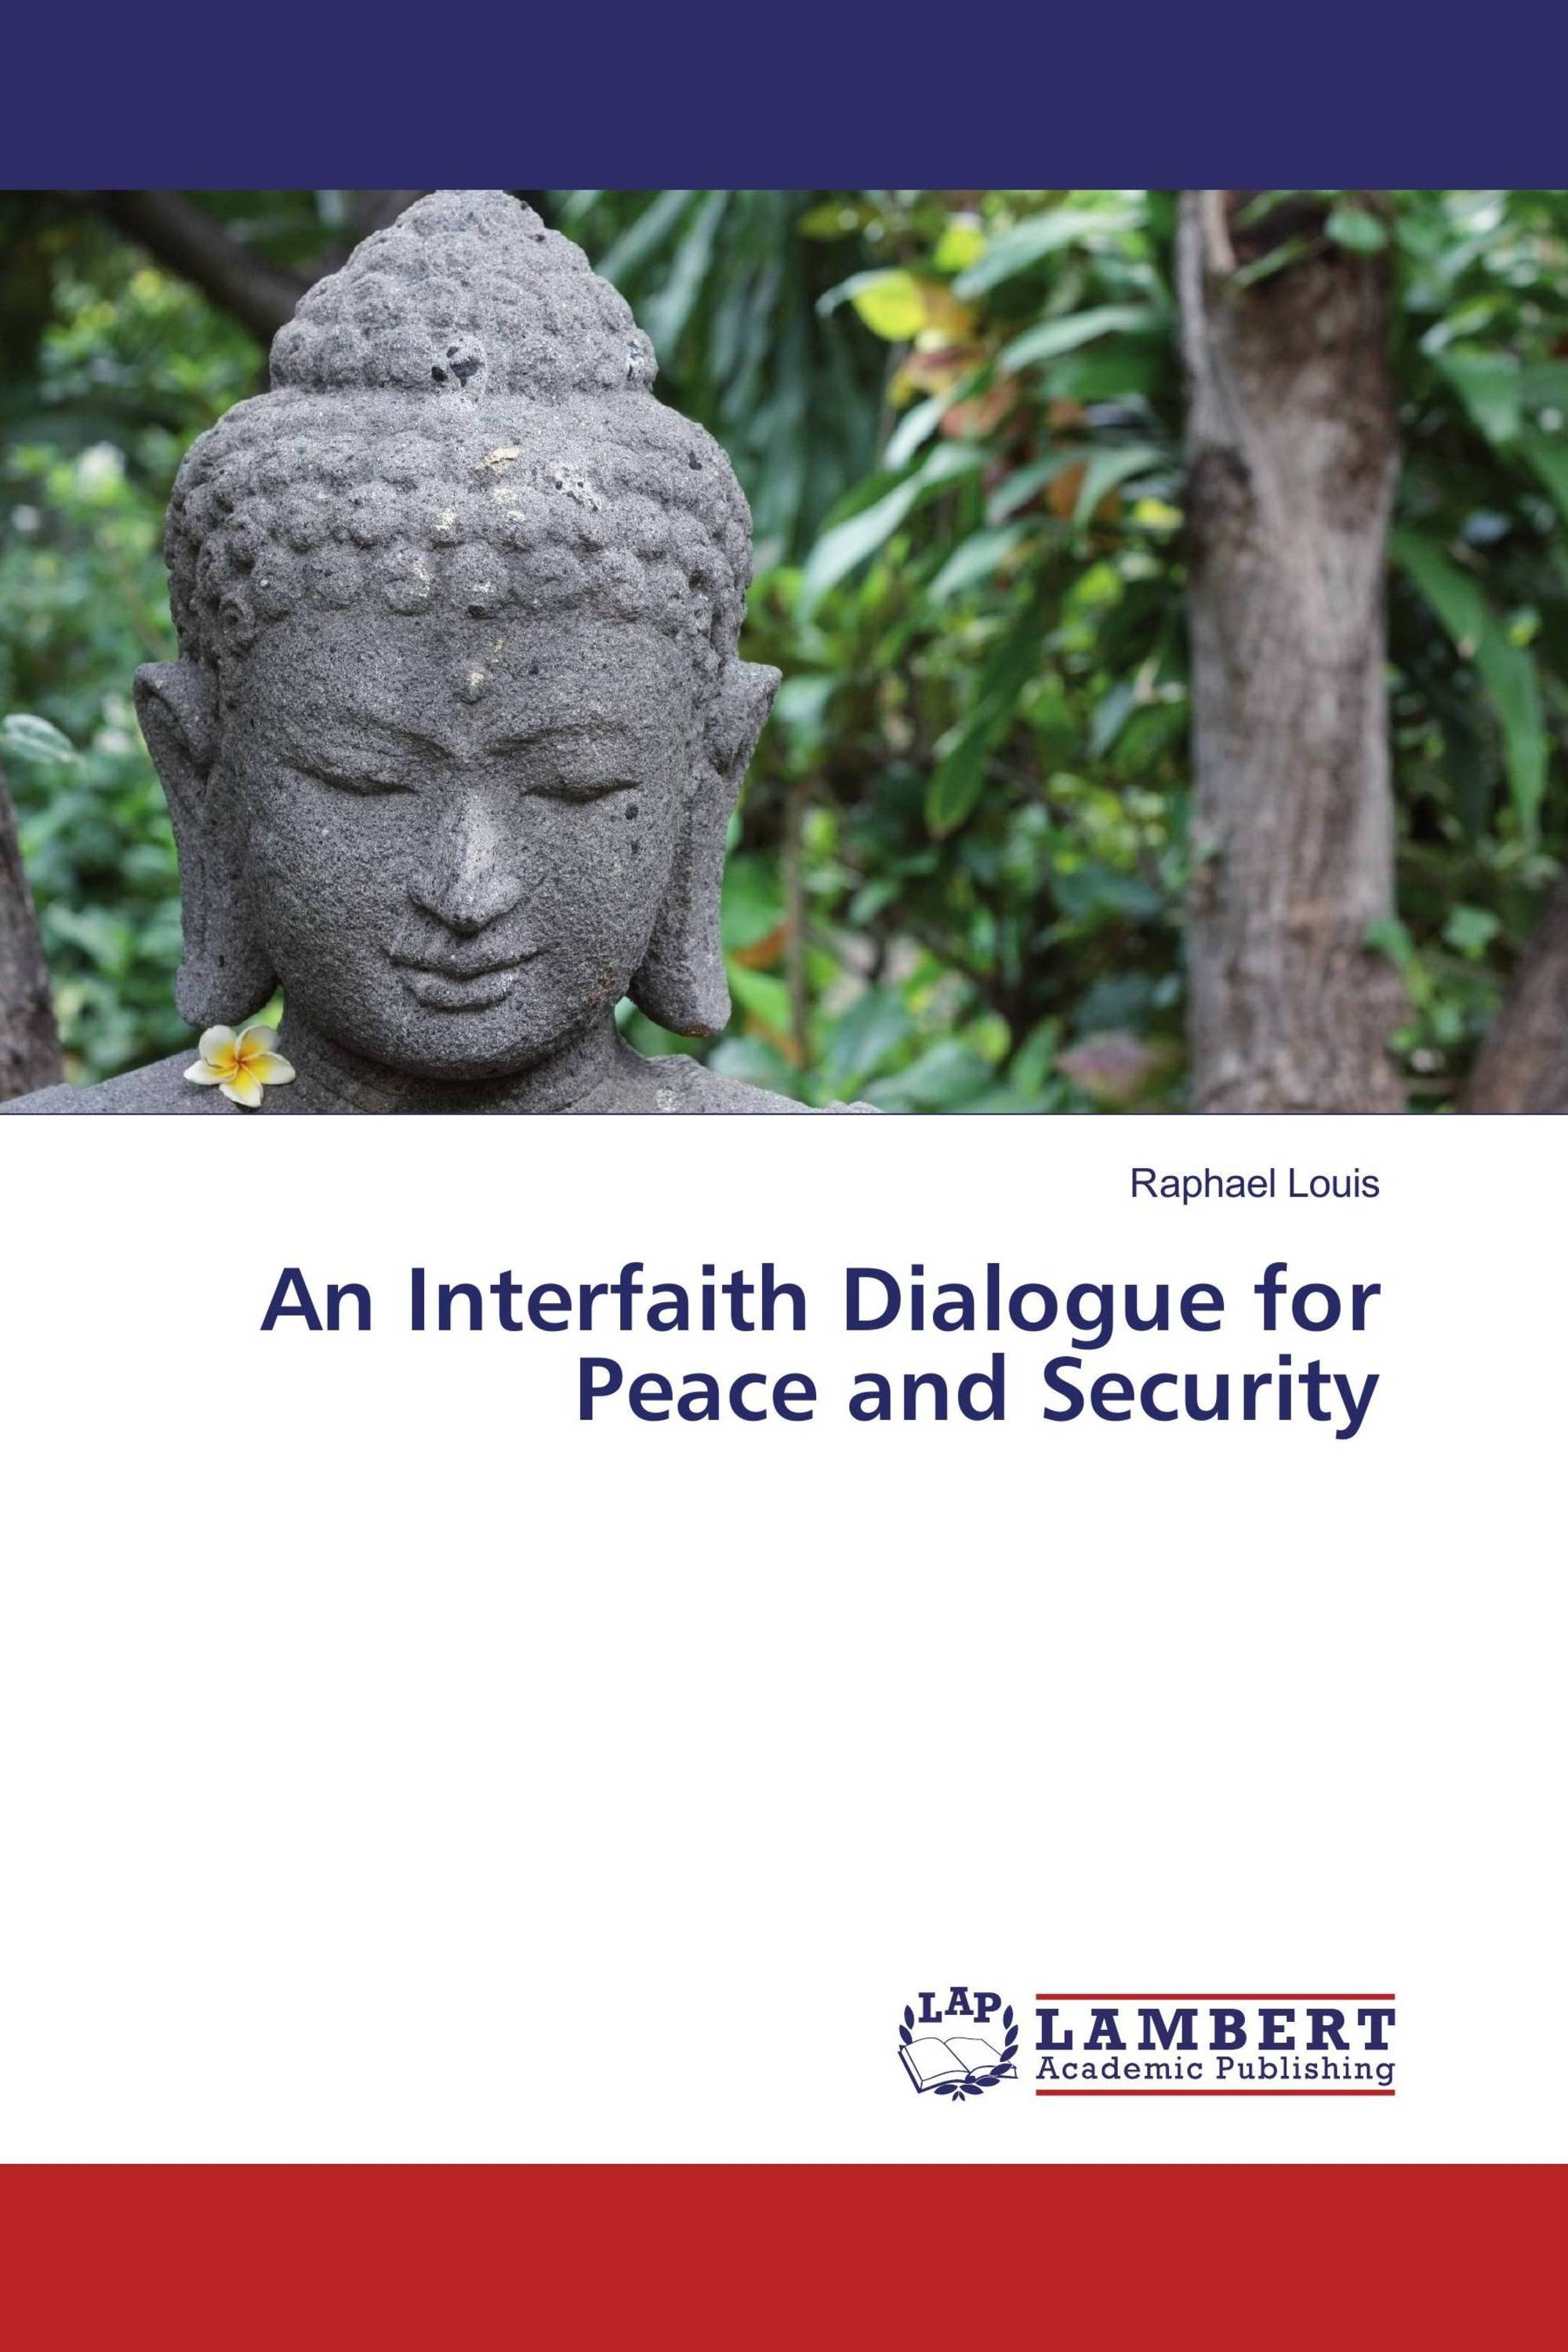 An Interfaith Dialogue for Peace and Security